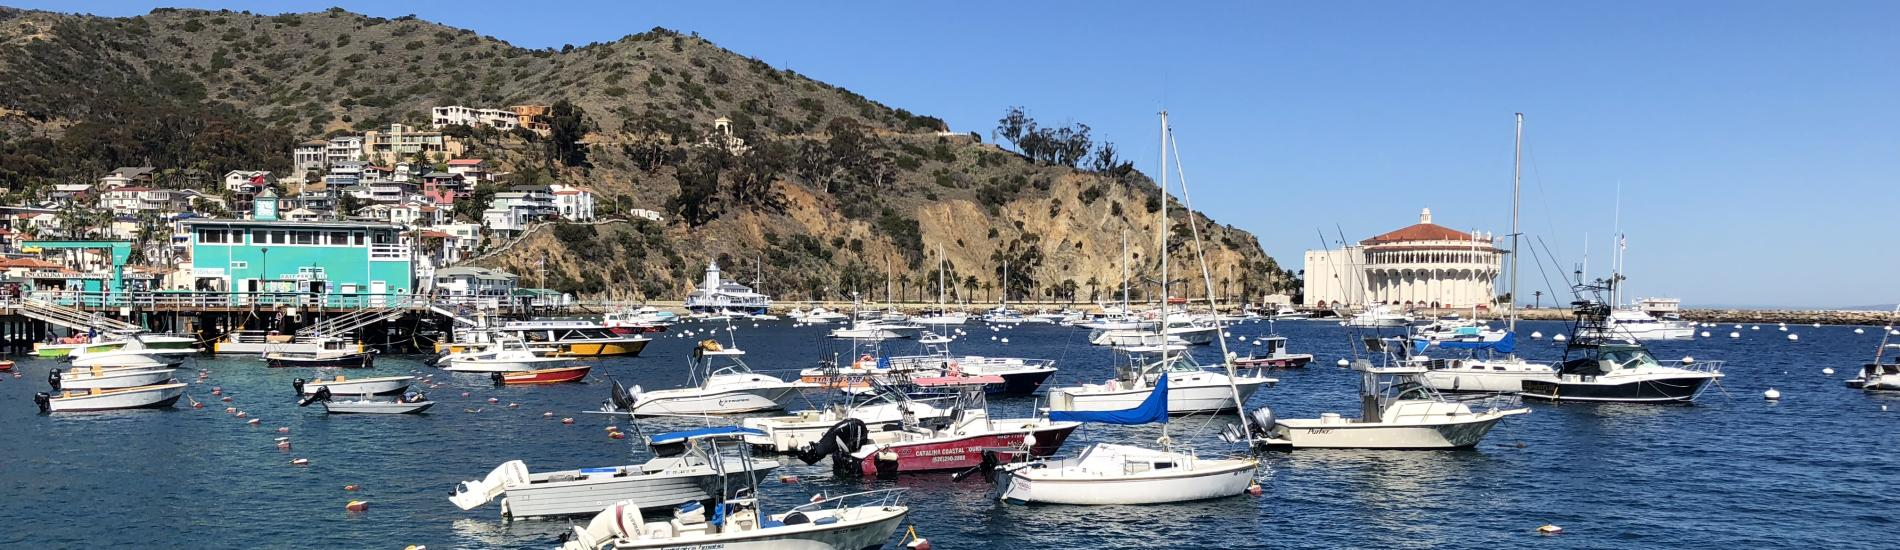 Boats in Avalon Harbor